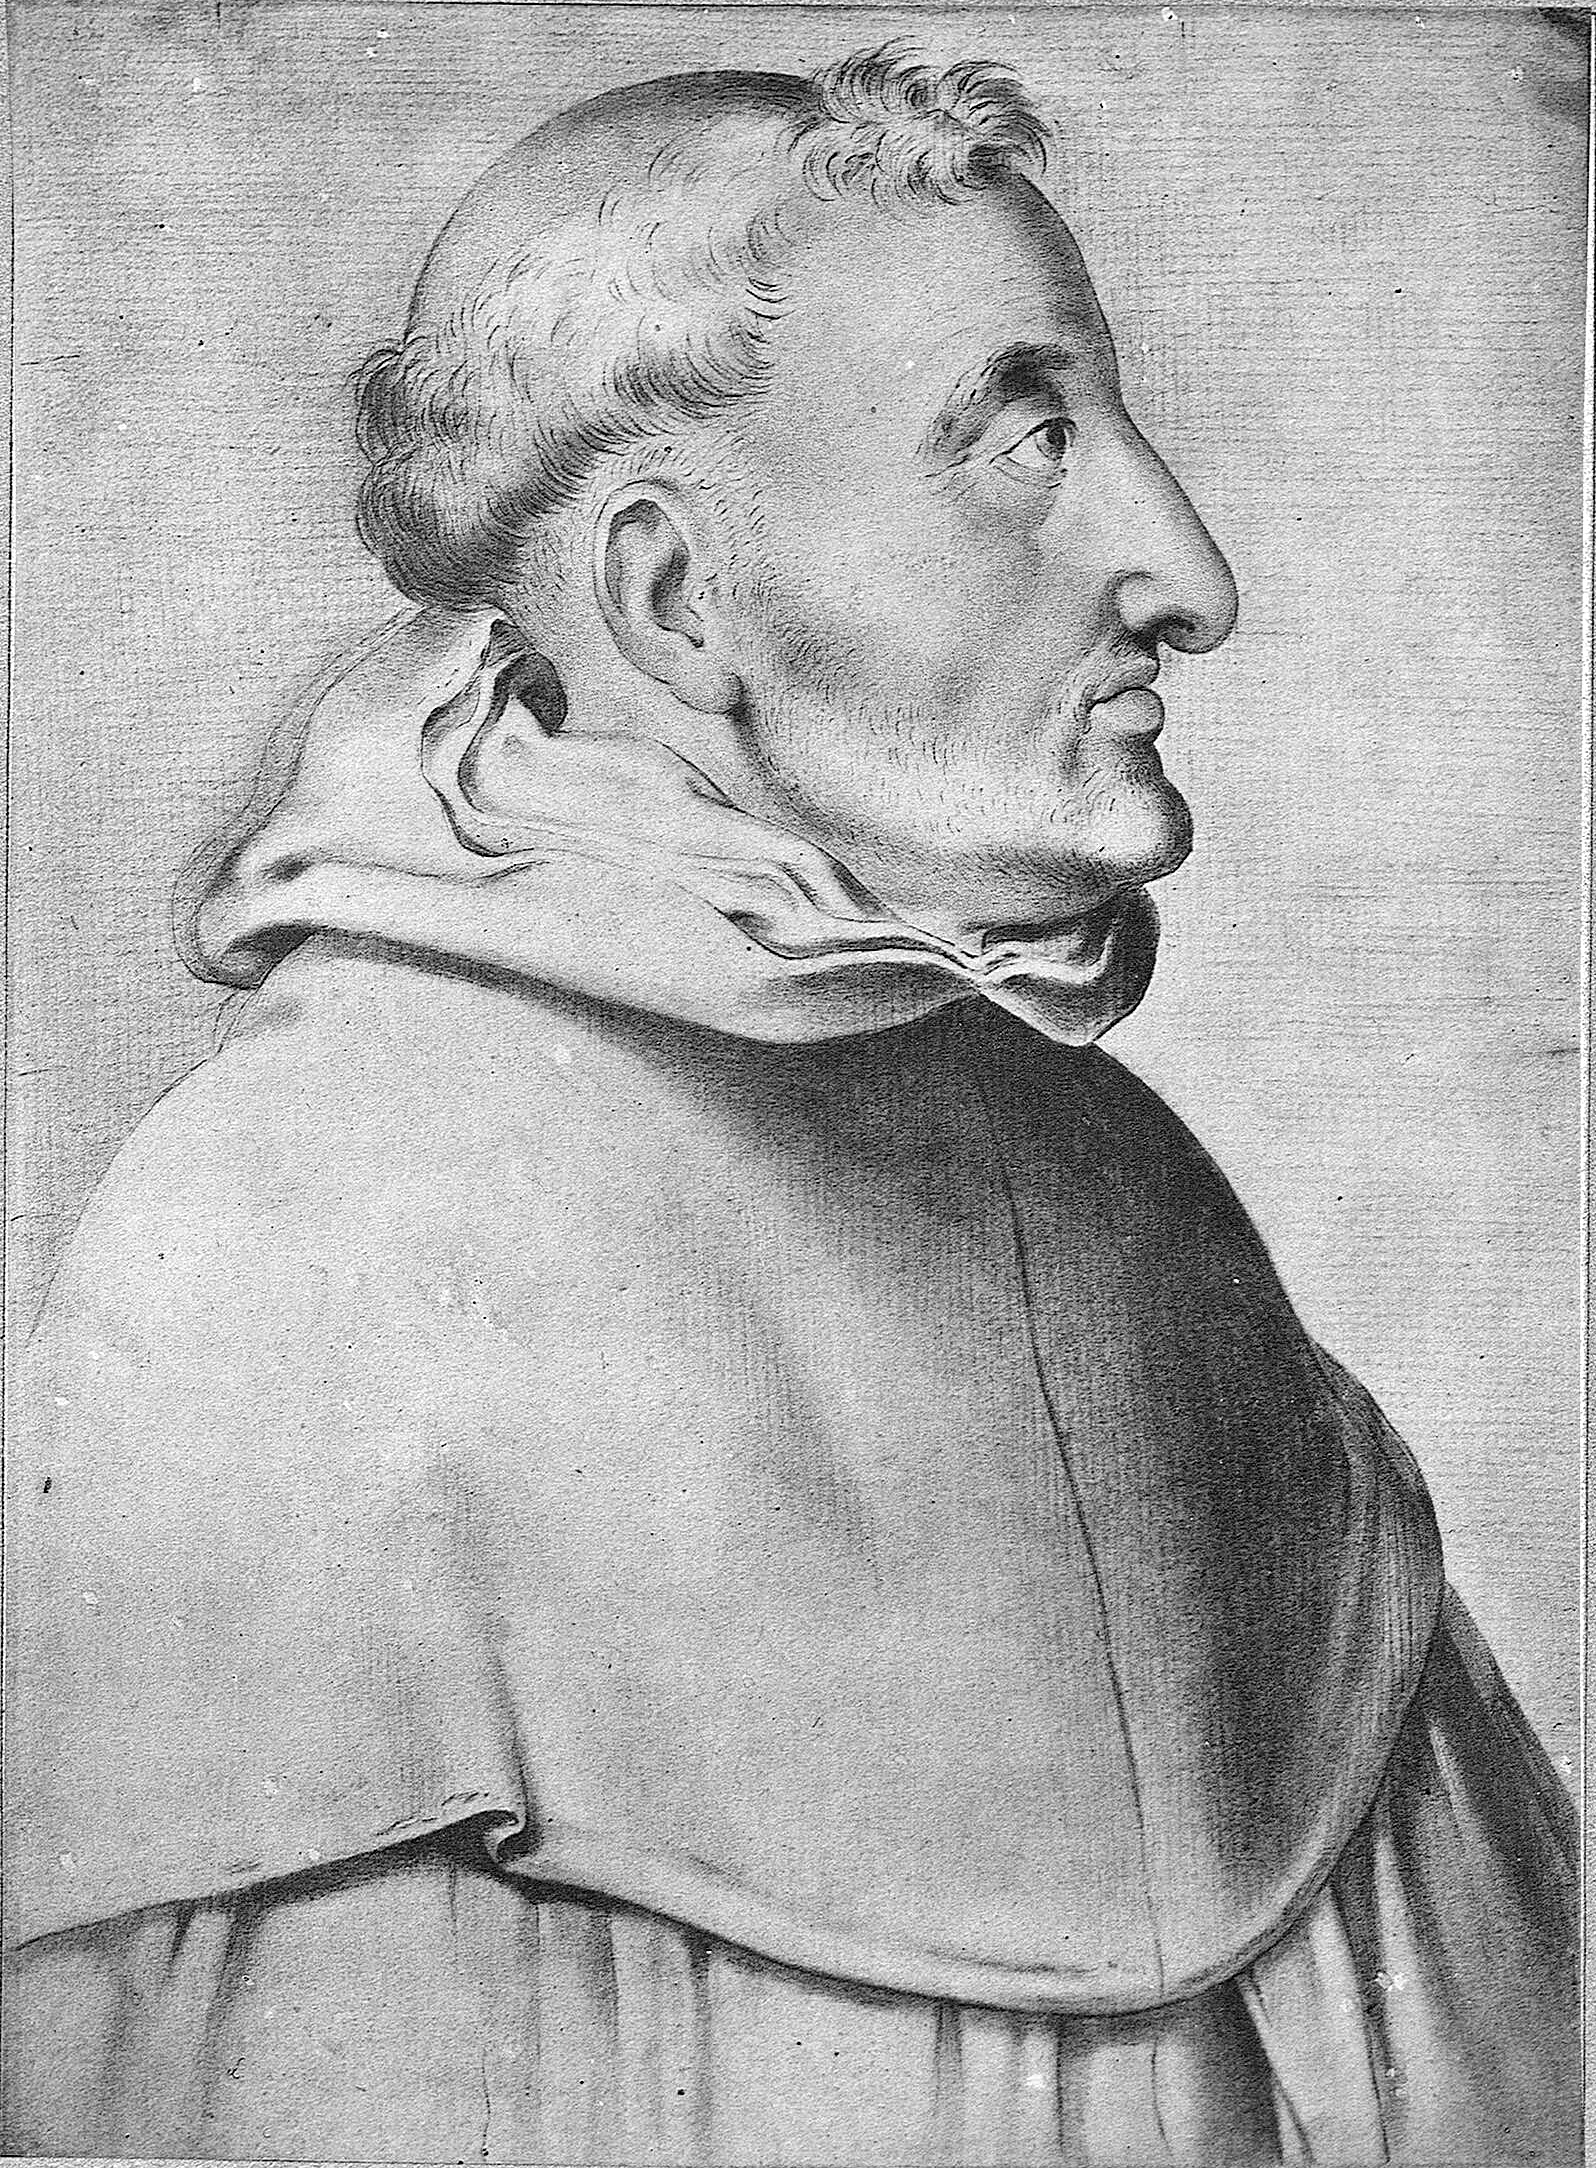 Louis of Granadain a drawing by [[Francisco Pacheco